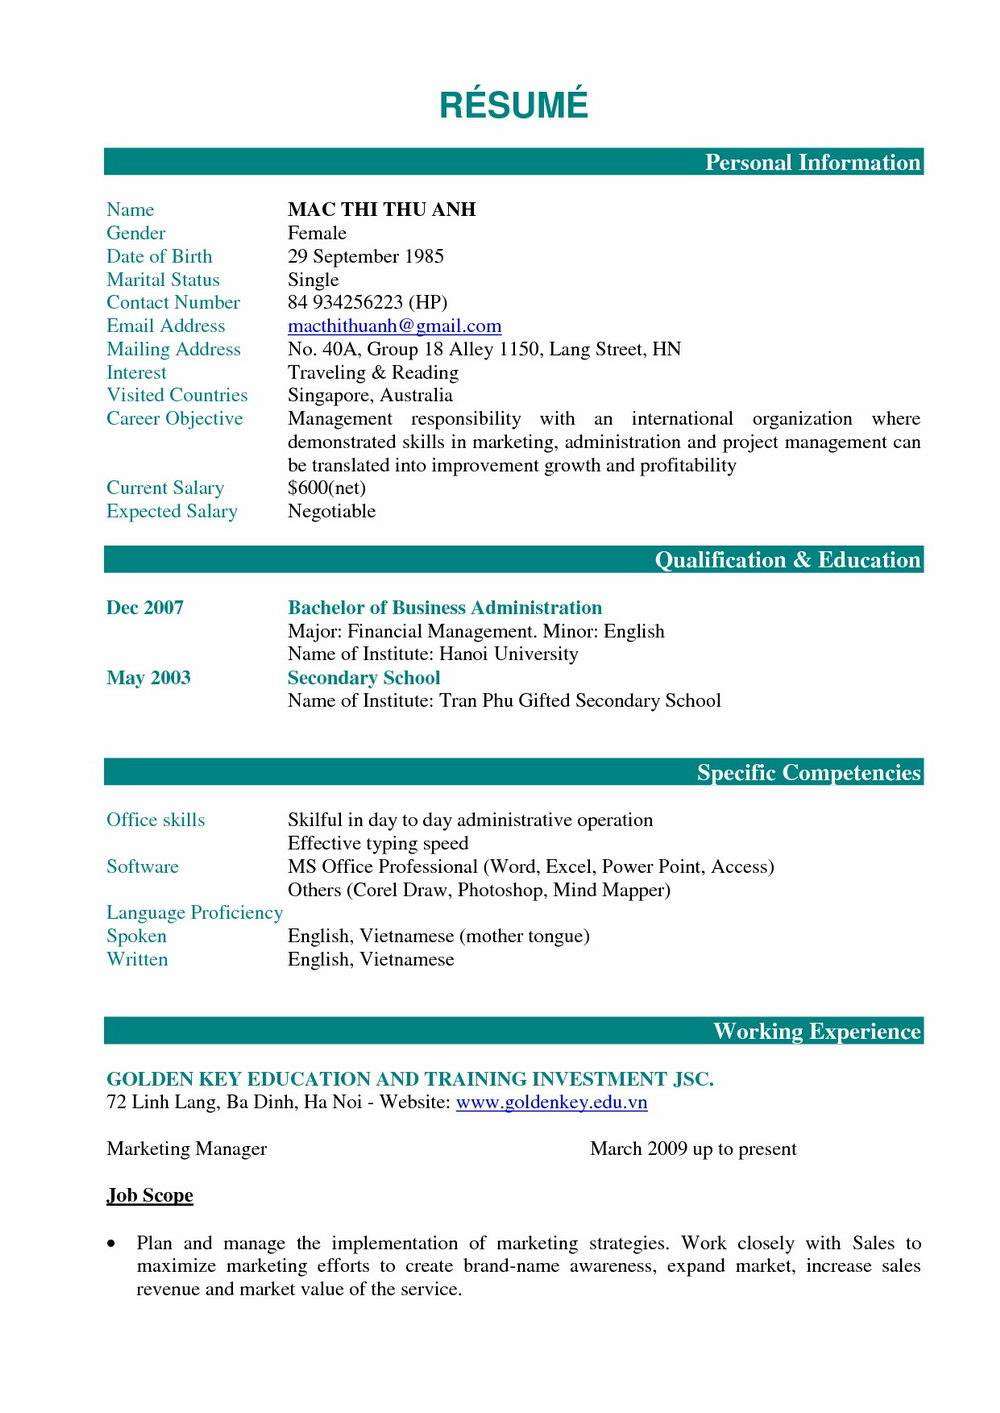 Resume Templates For Macy's